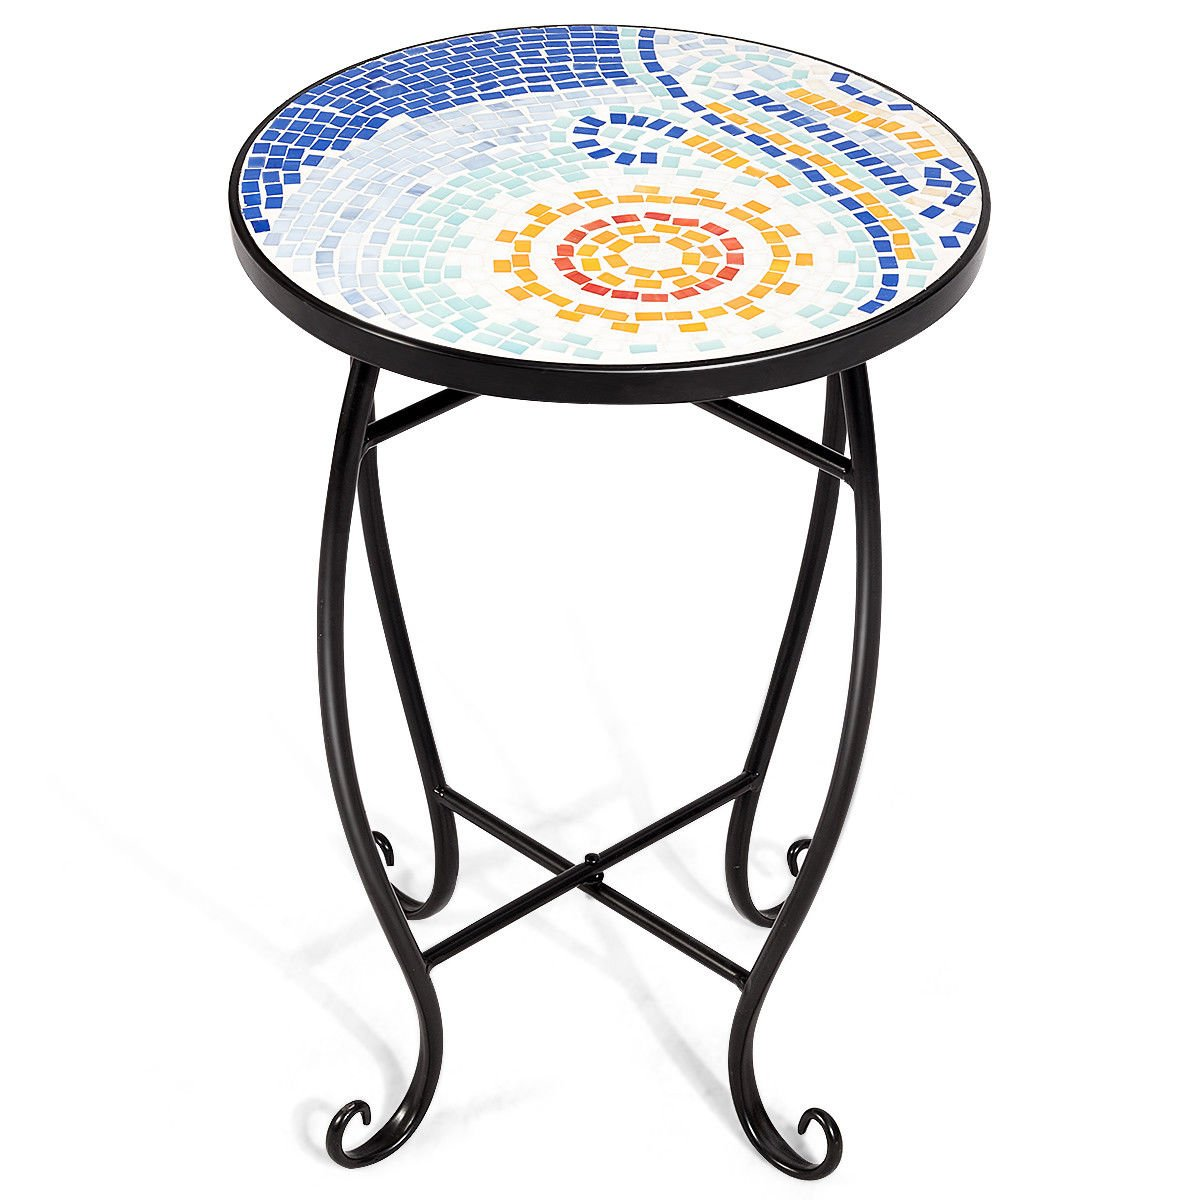 "NanaPluz 21"" H Blue Ocean Round Plant Stand Steel Scheme Garden Decor Display Accent Table Curved Legs Mosaic Inlay Top with Ebook"